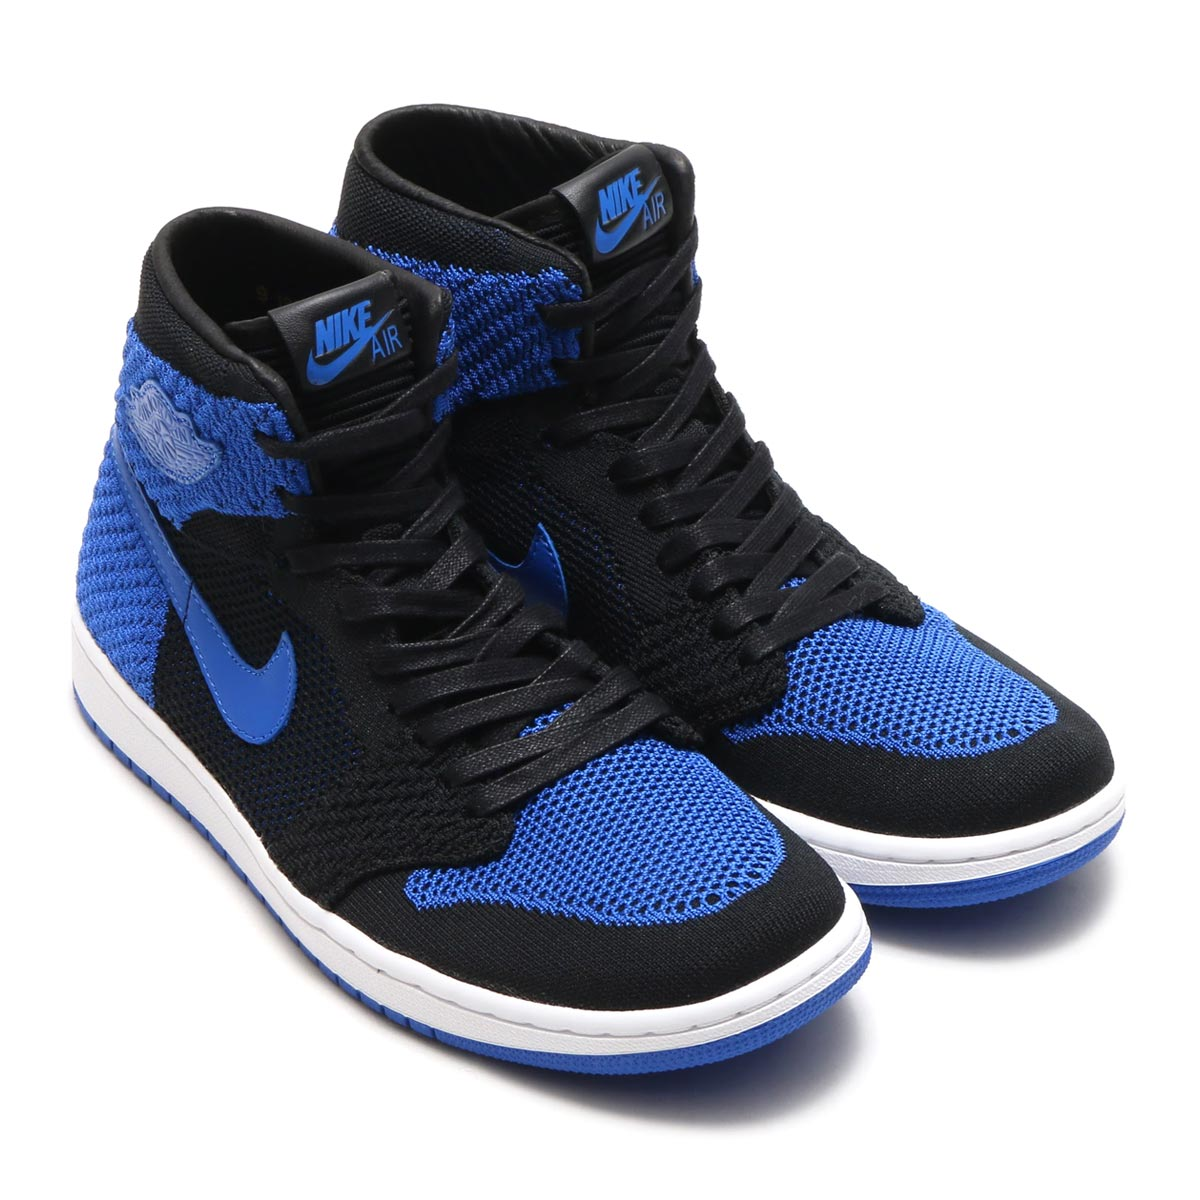 buy popular c35b8 f314d Air Jordan 1 who appeared in 1985 recorded totally new wind on a coat. As  series of Air Jordan is established, the designs using the best material at  the ...